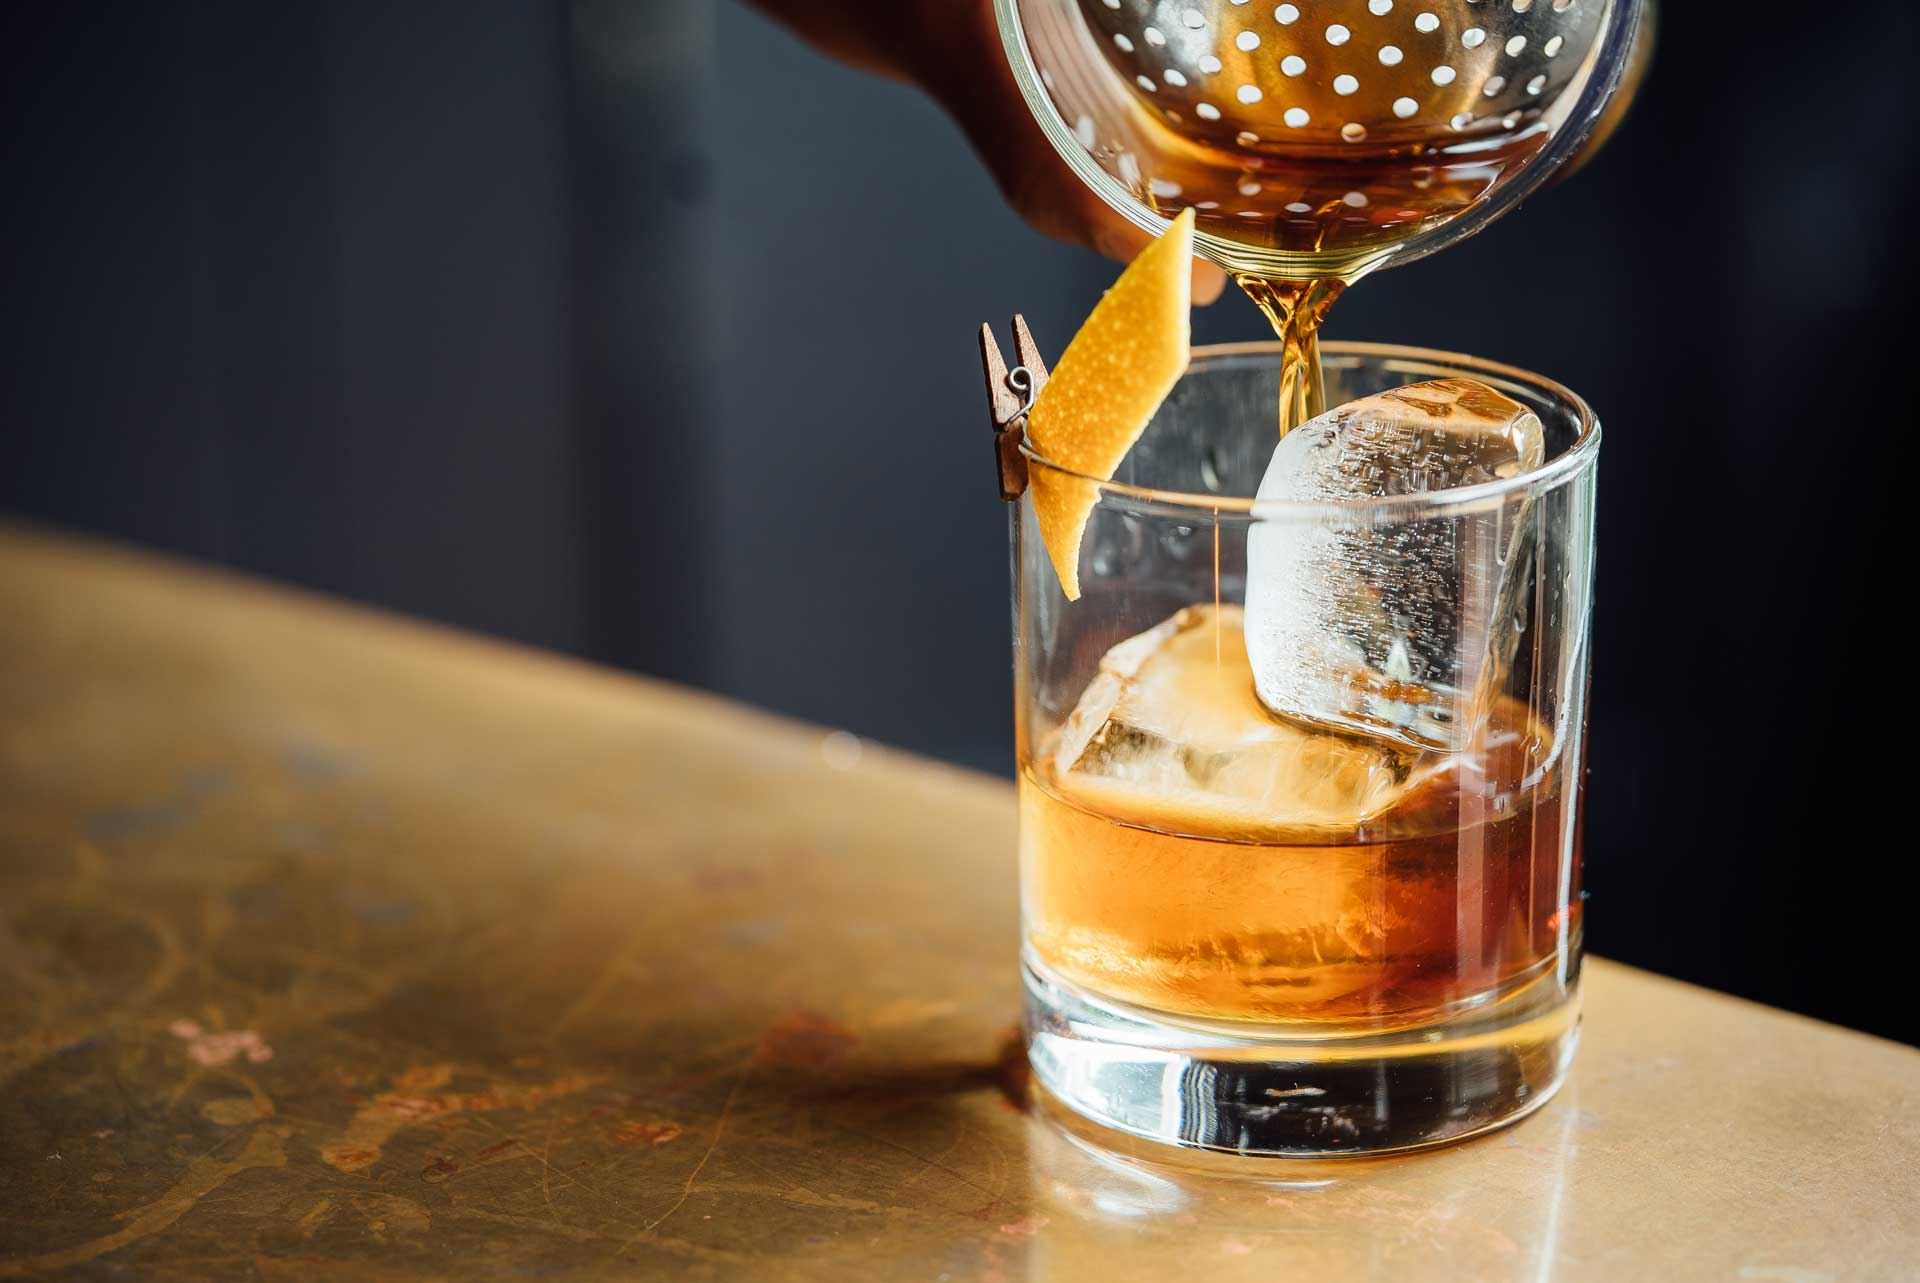 whiskey being poured into glass